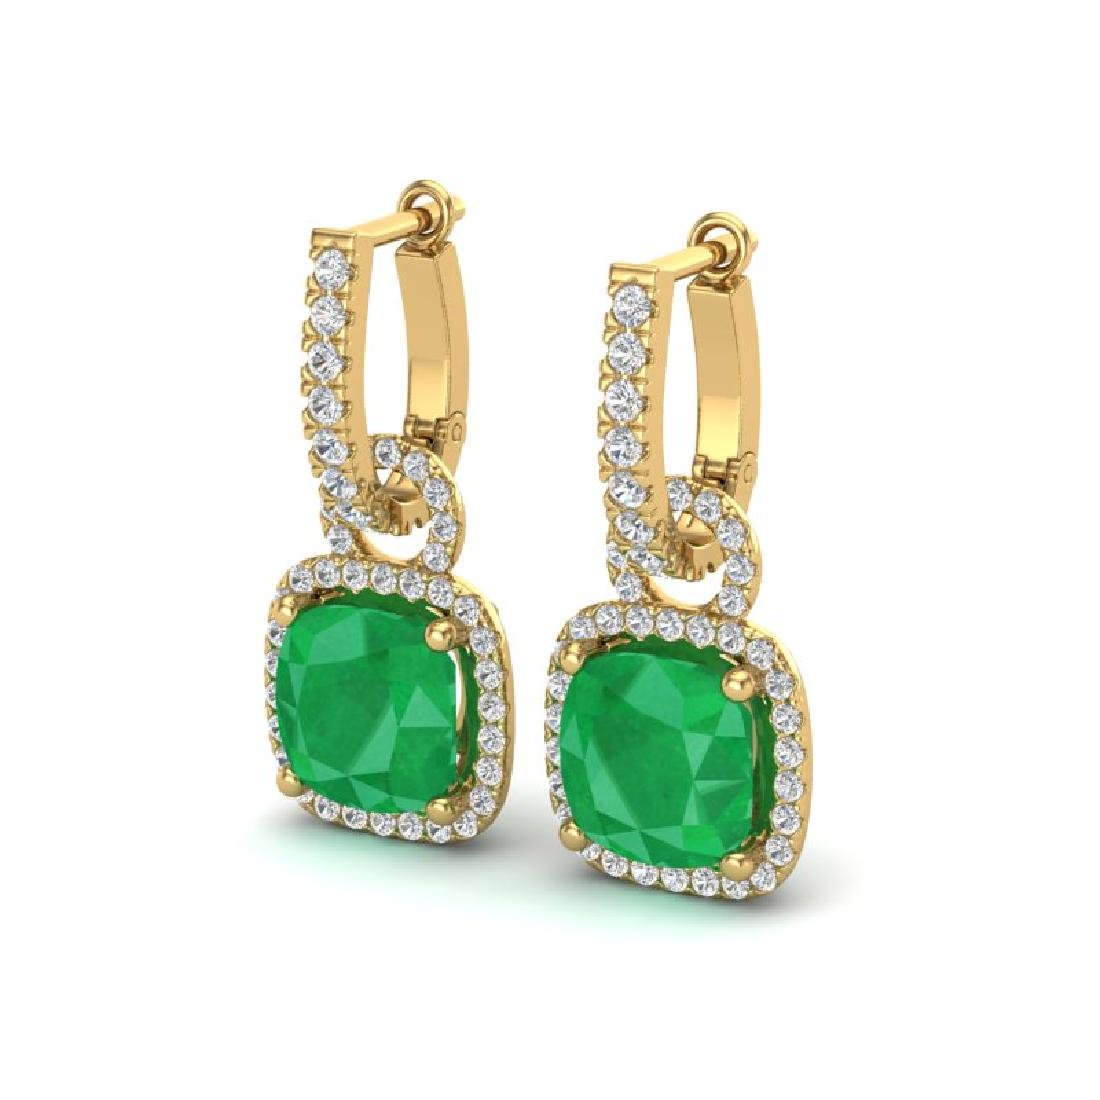 6 CTW Emerald & Micro Pave VS/SI Diamond Earrings 18K